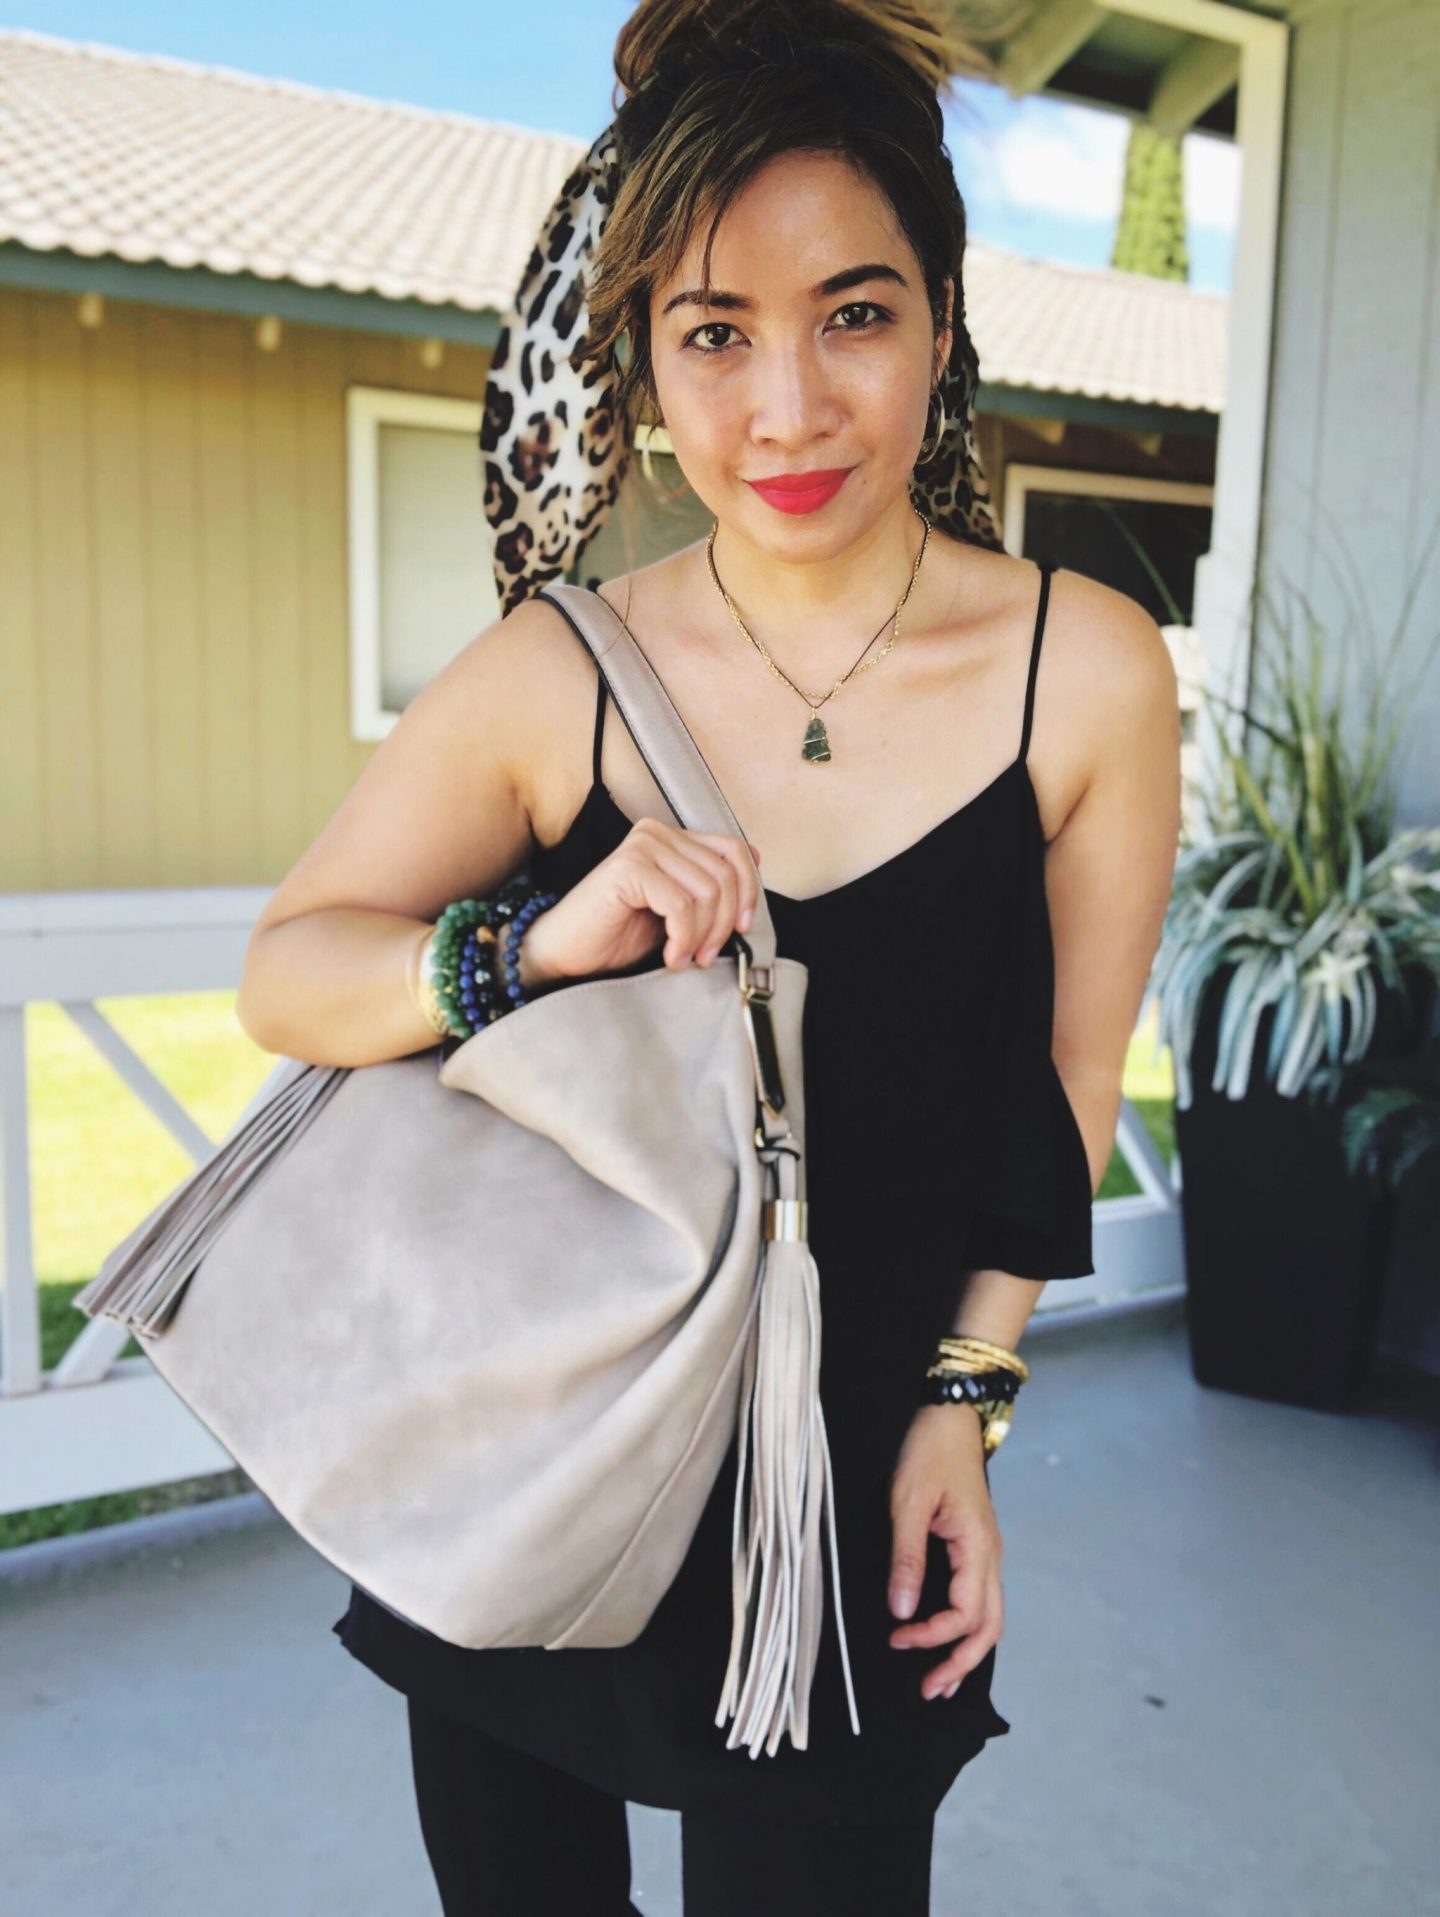 Hawaii Fashion Blogger Thefabzilla shares affordable and stylish vegan handbags from La Vani